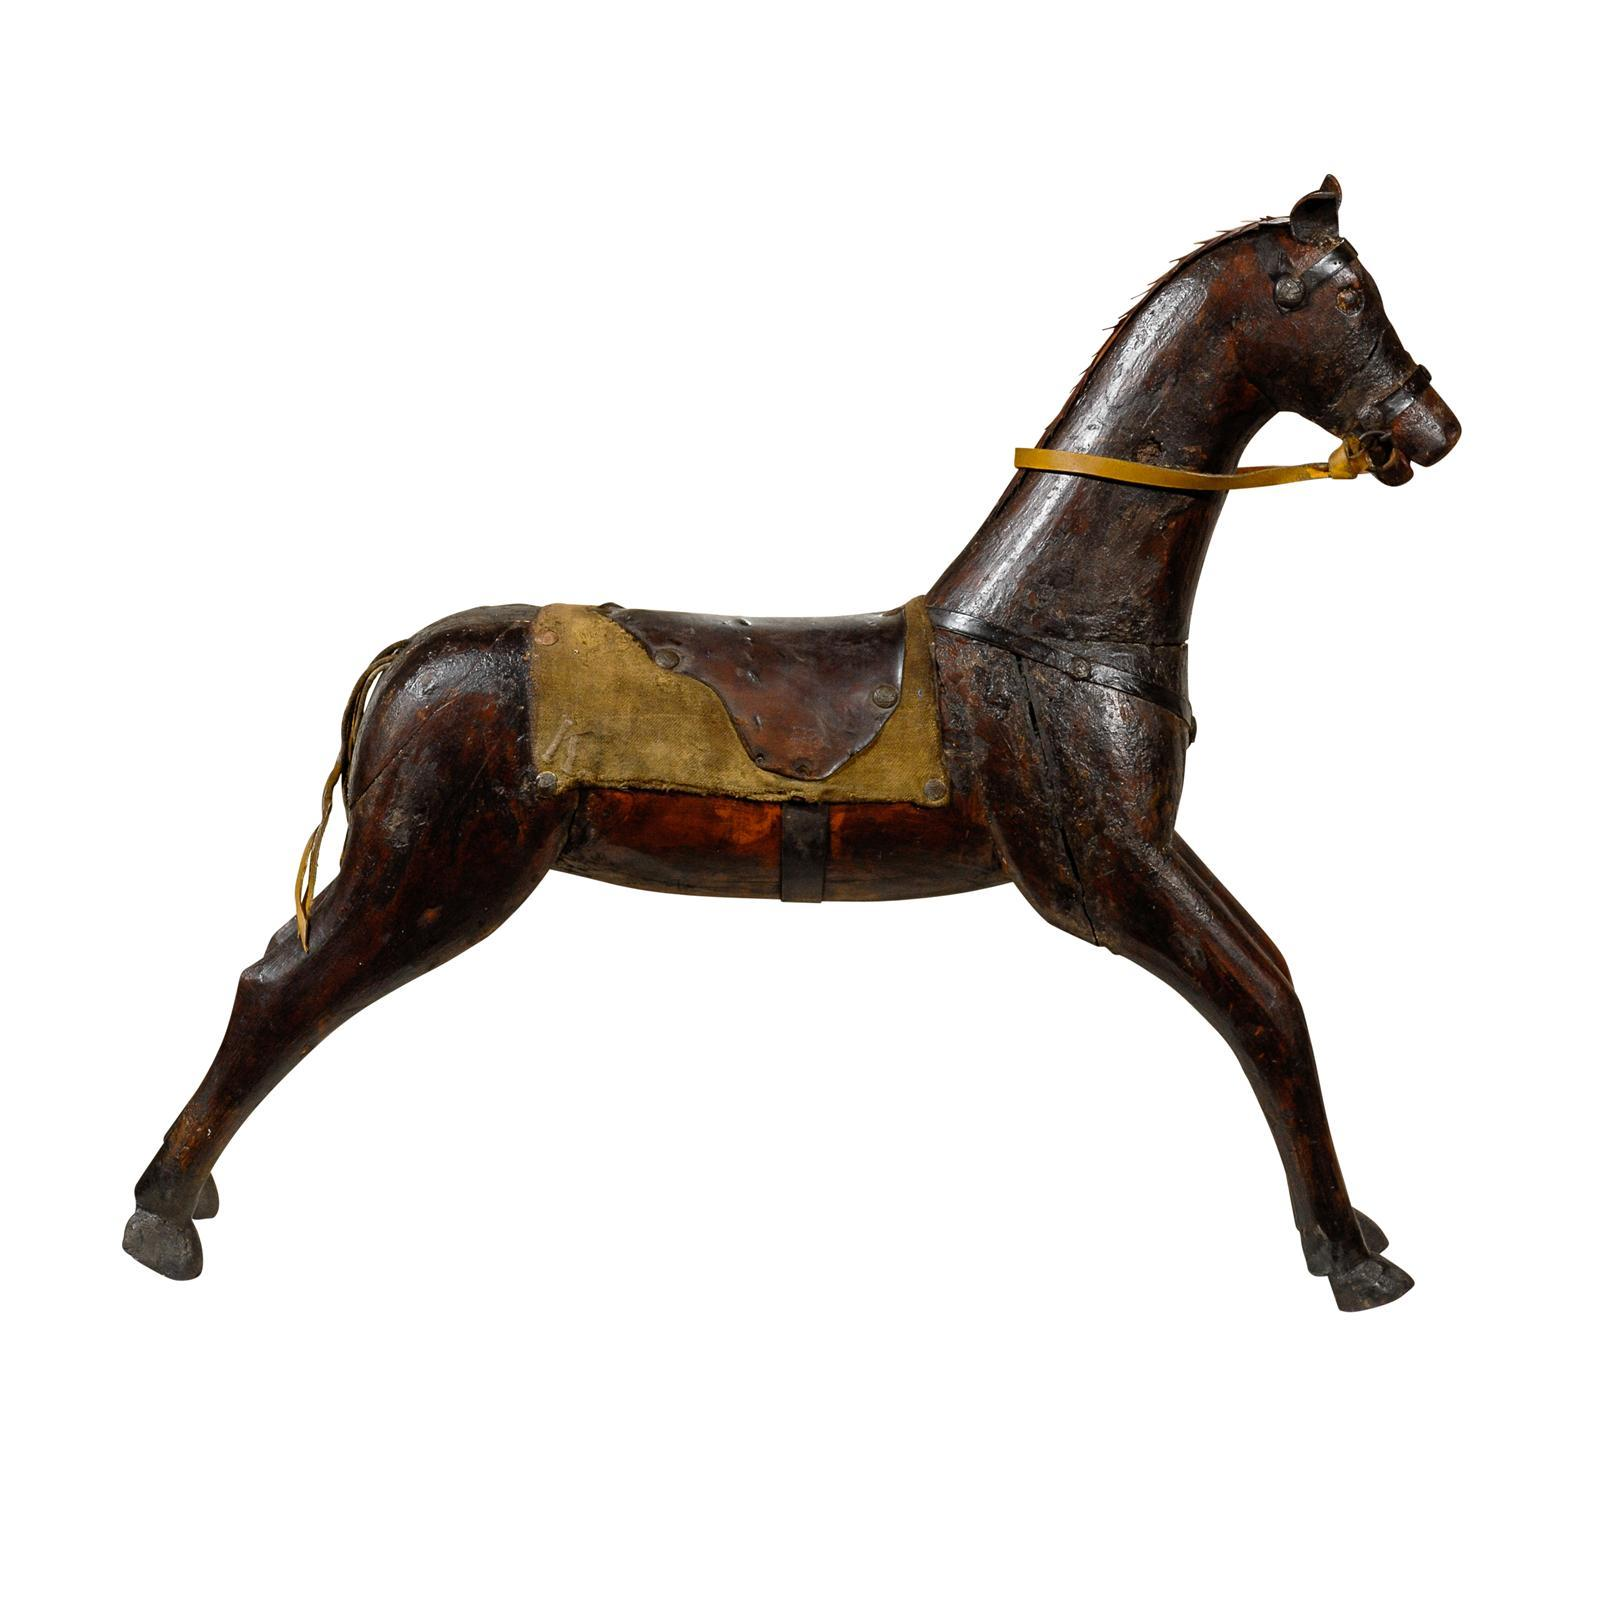 Mid-19th Century English Victorian Painted Wooden Horse with Leather Saddle